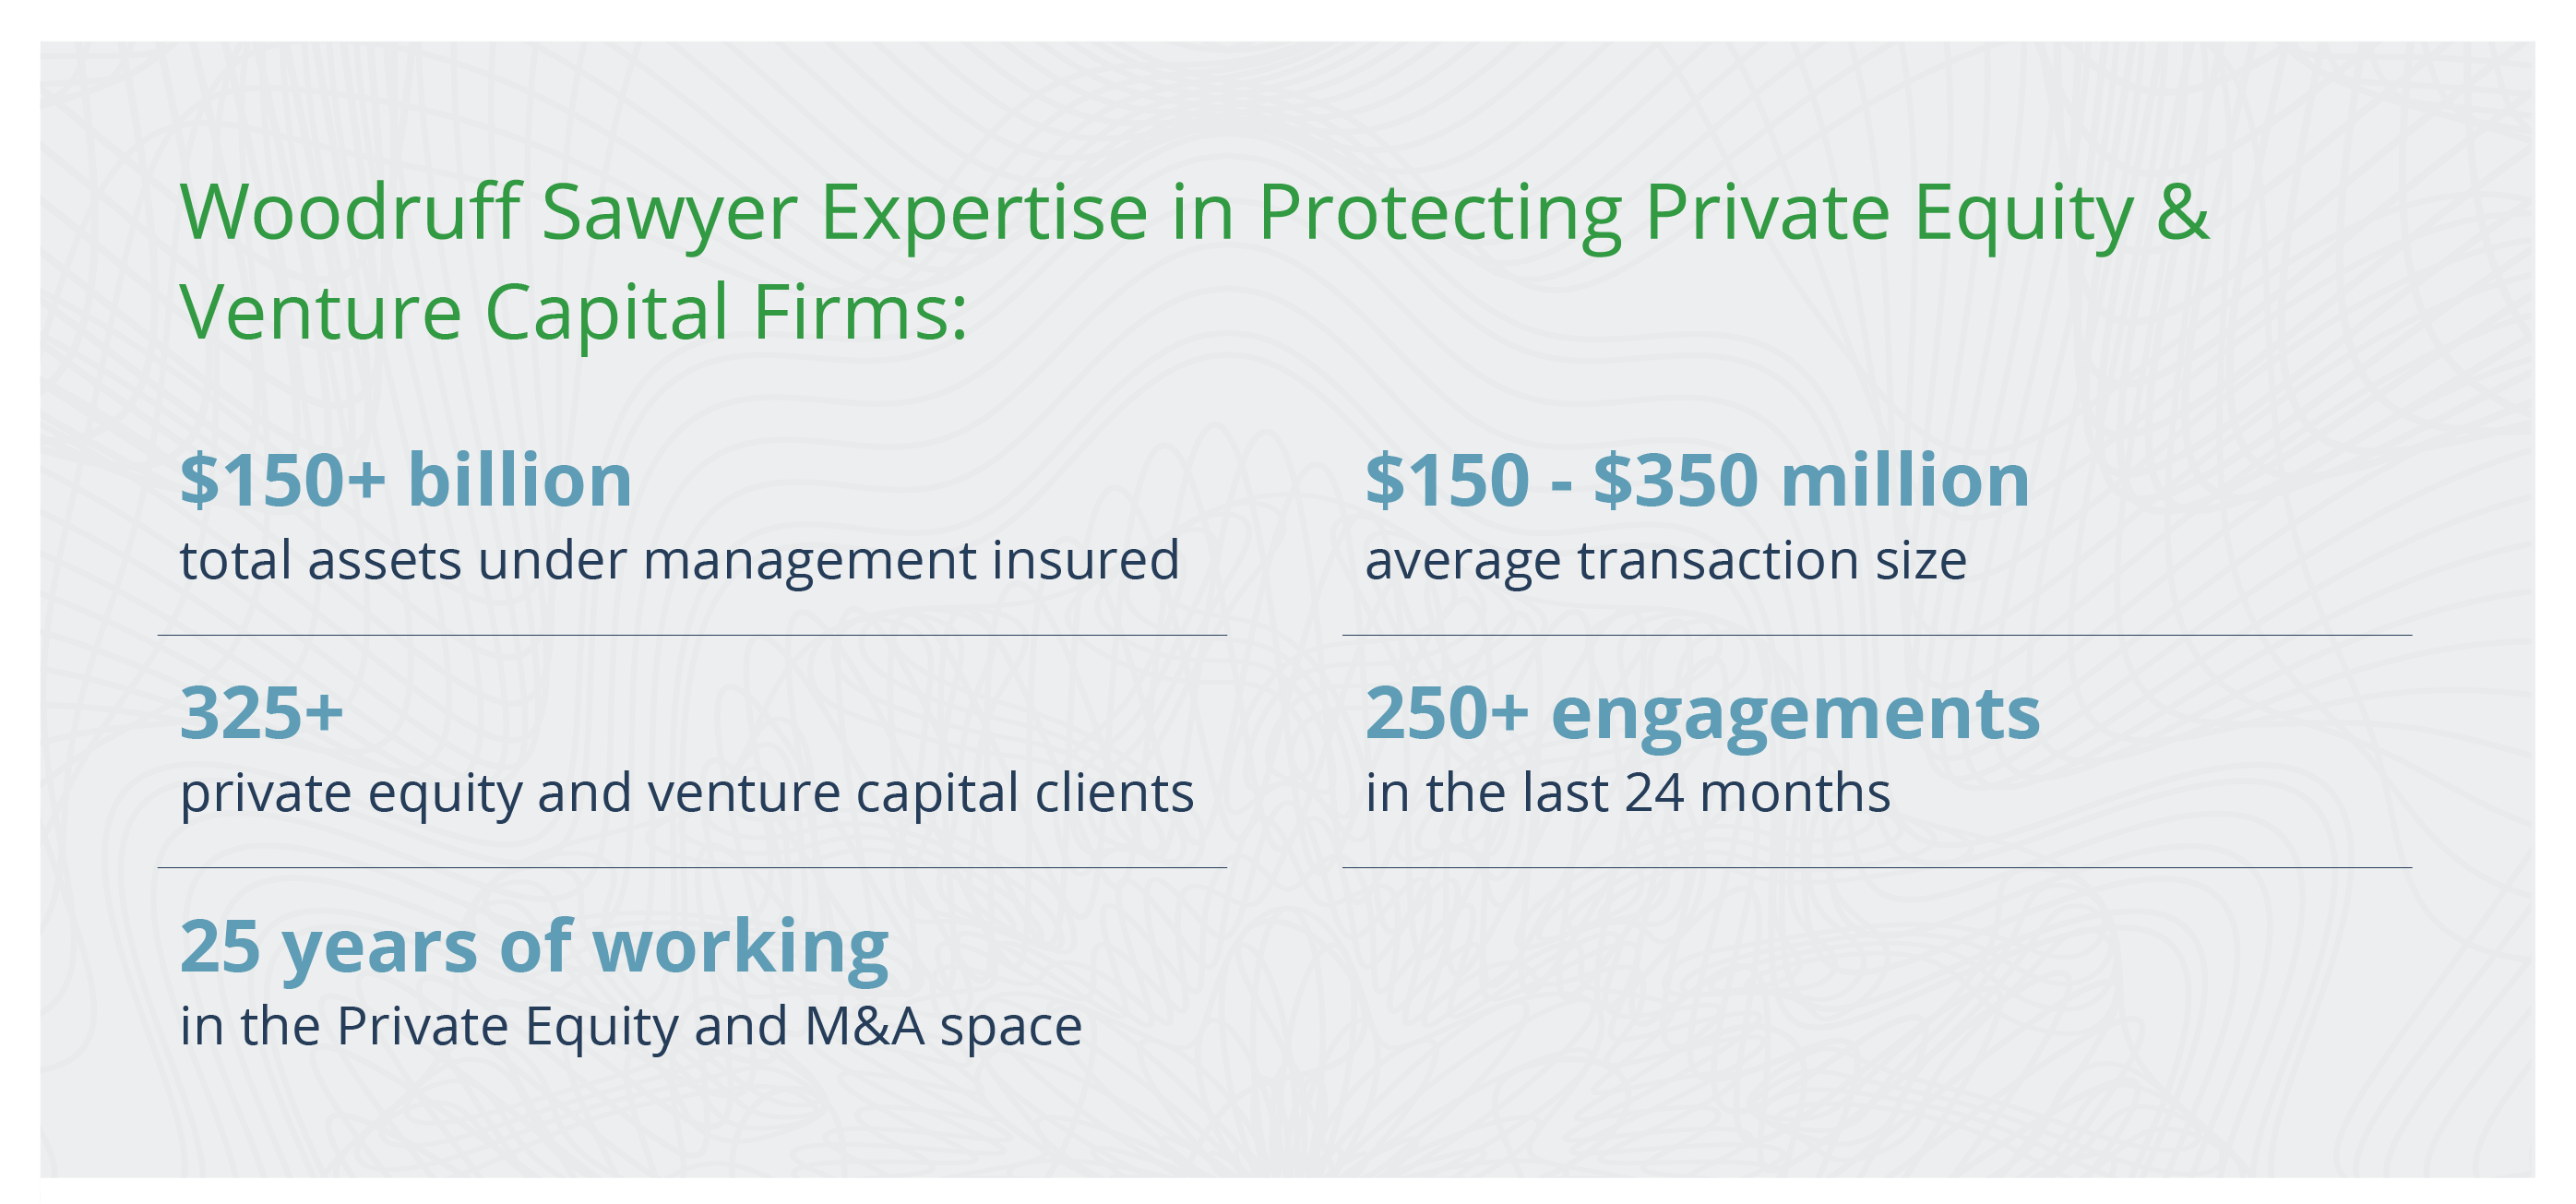 Woodruff Sawyer Expertise in Protective Private Equity and Venture Capital Firms Graphic